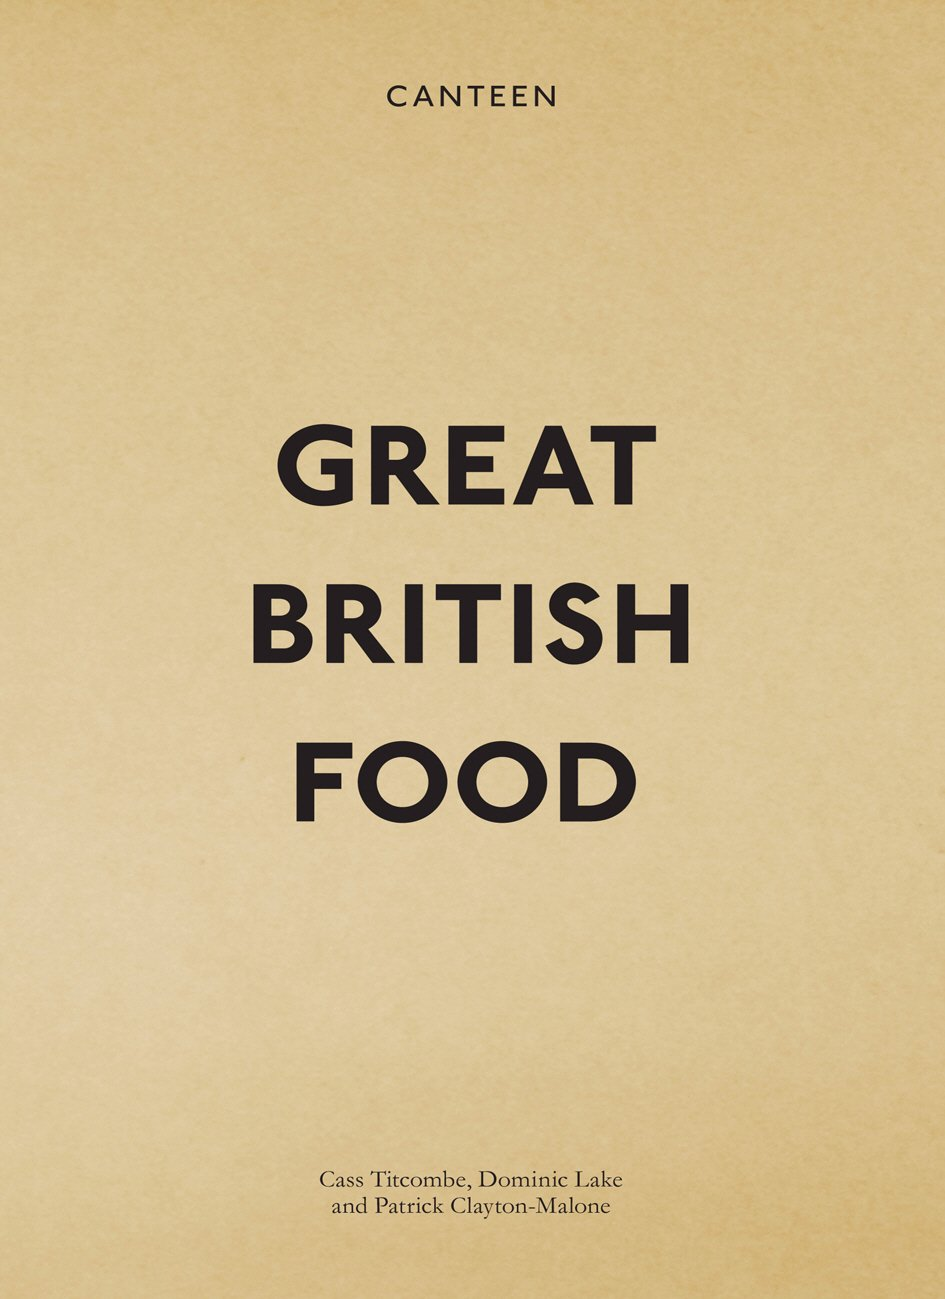 Image OfCanteen: Great British Food (English Edition)